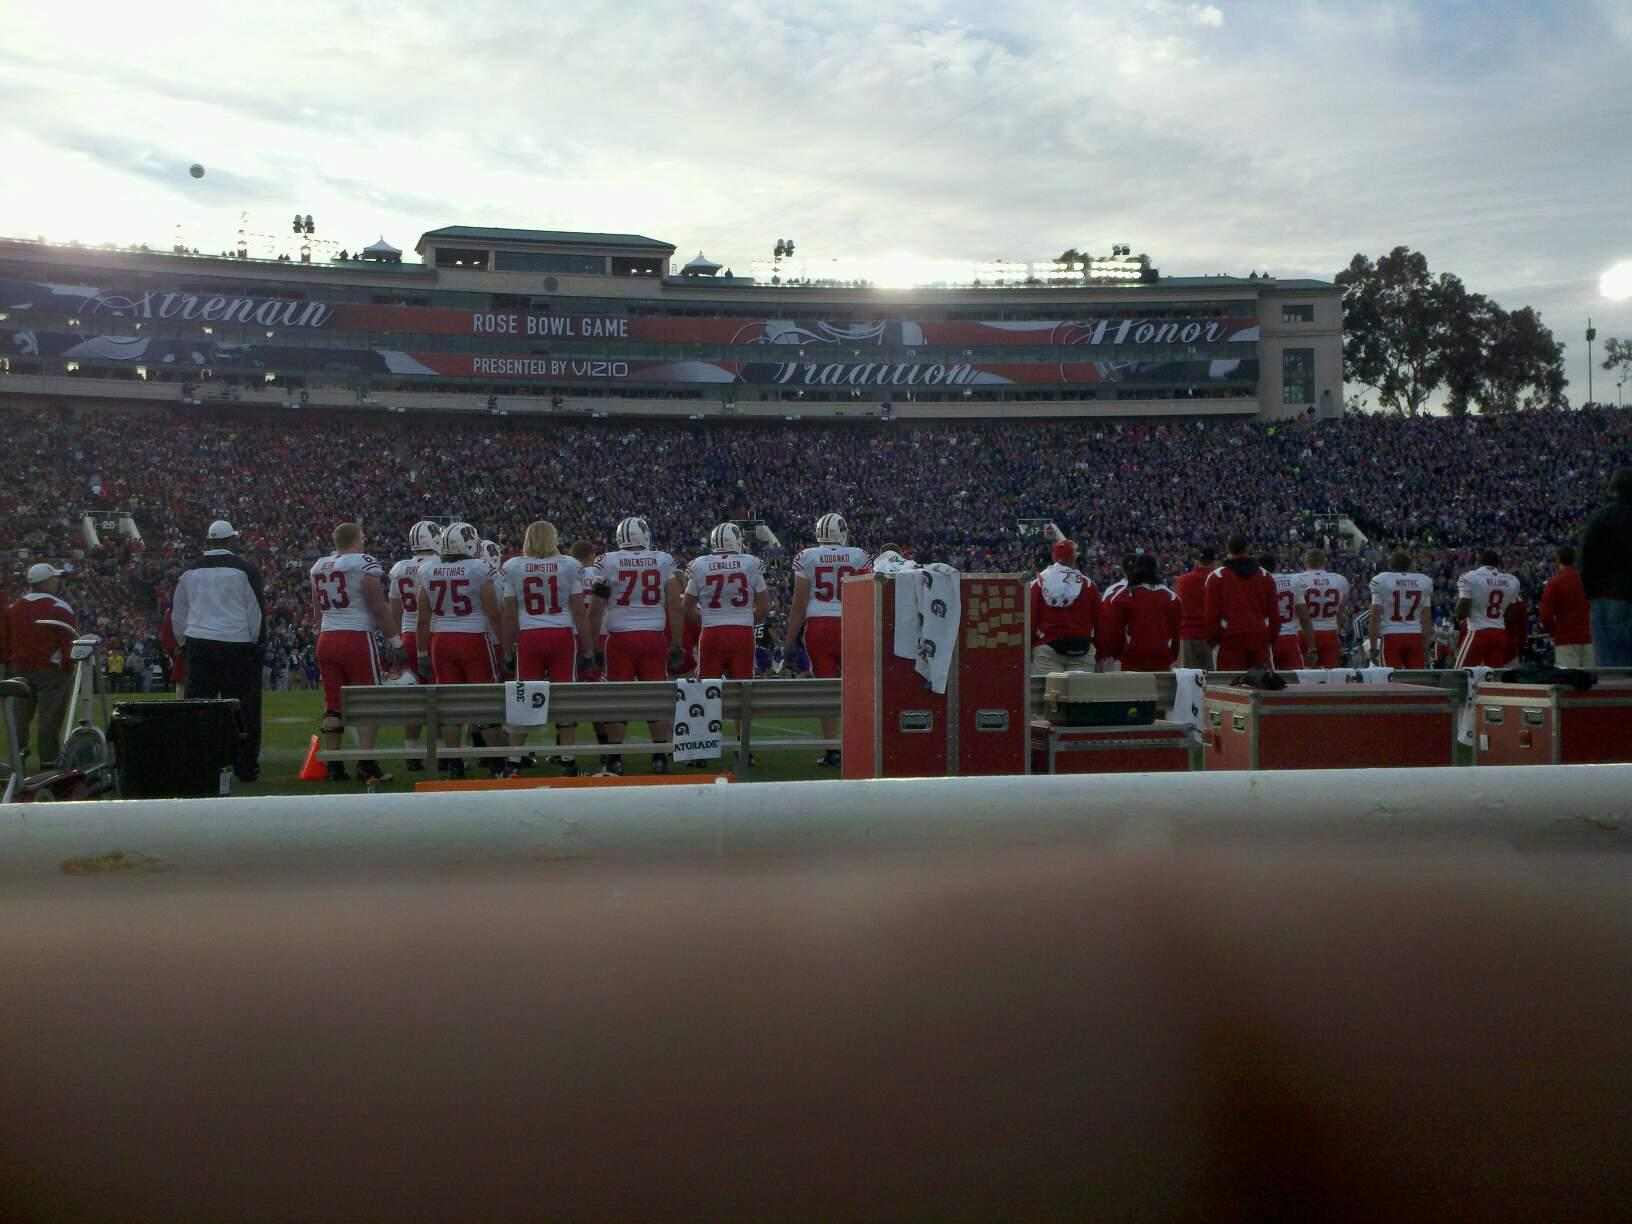 Rose Bowl Section 4-H Row 1 Seat 108